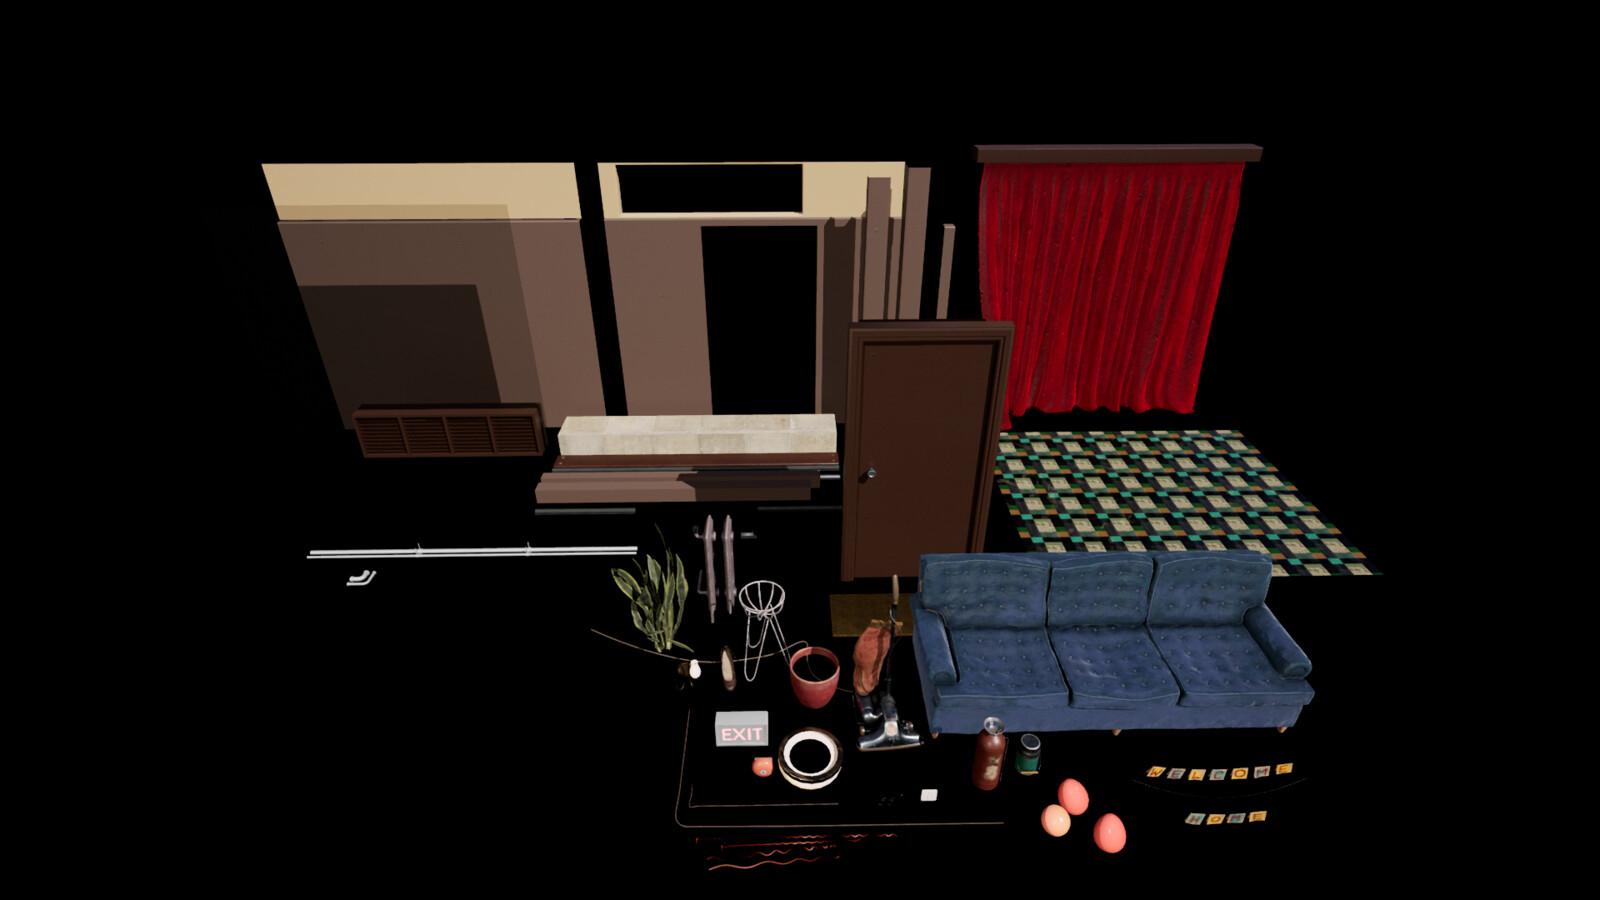 All the items used in the project